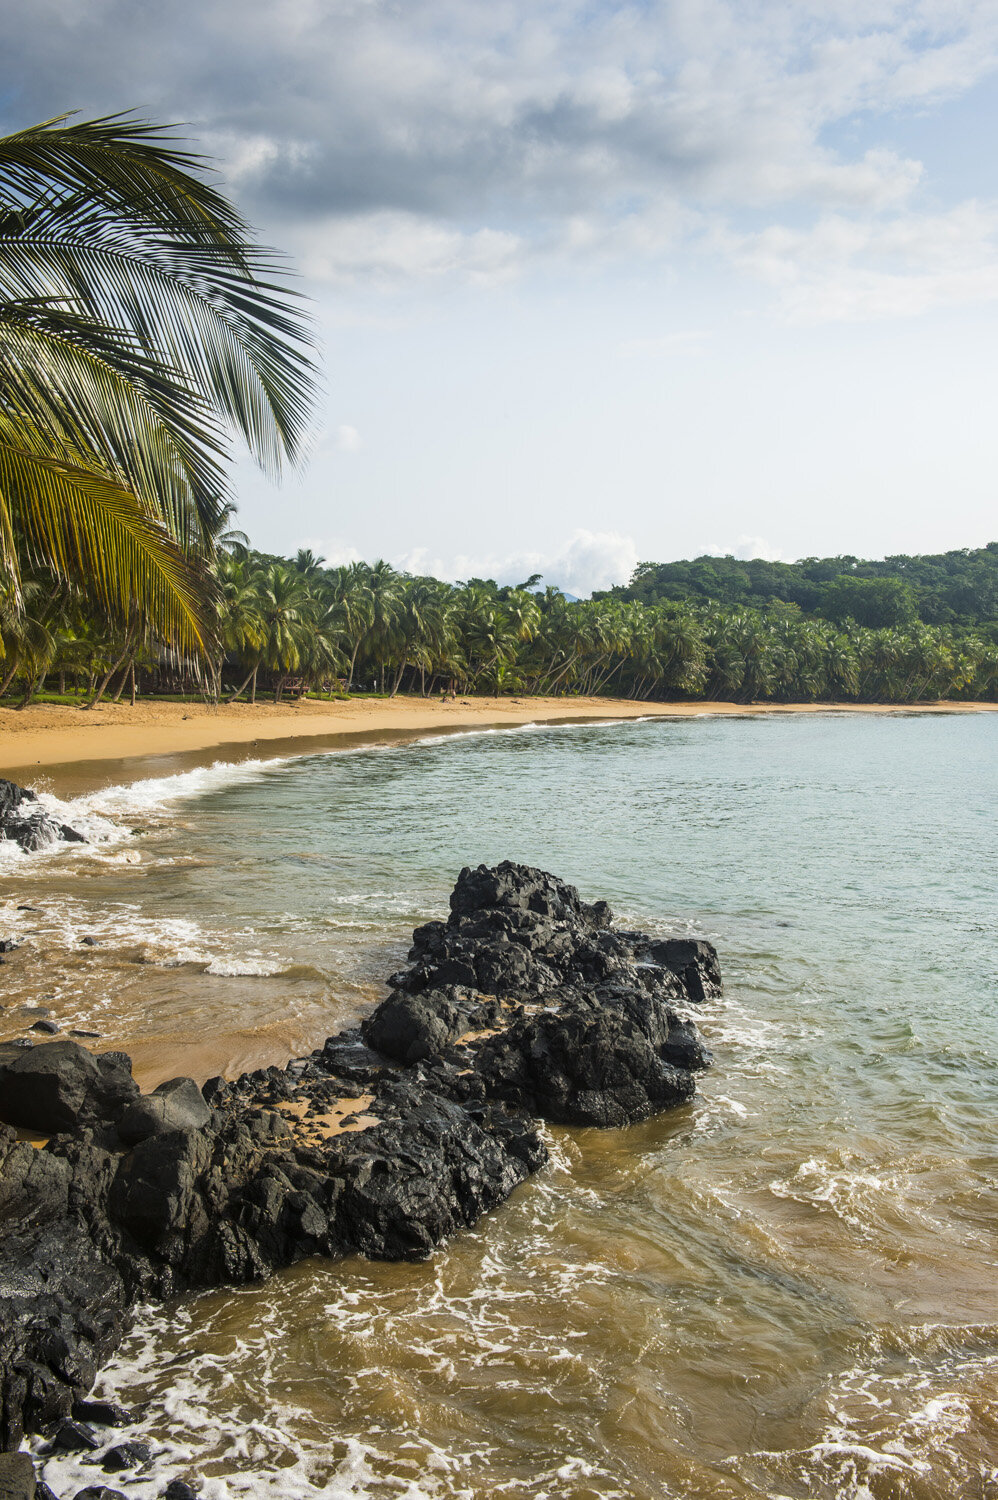 Beautiful beach in the Bom Bom Resort,Unesco Biosphere reserve, Principe, Sao Tome and Principe, Atlantic Ocean